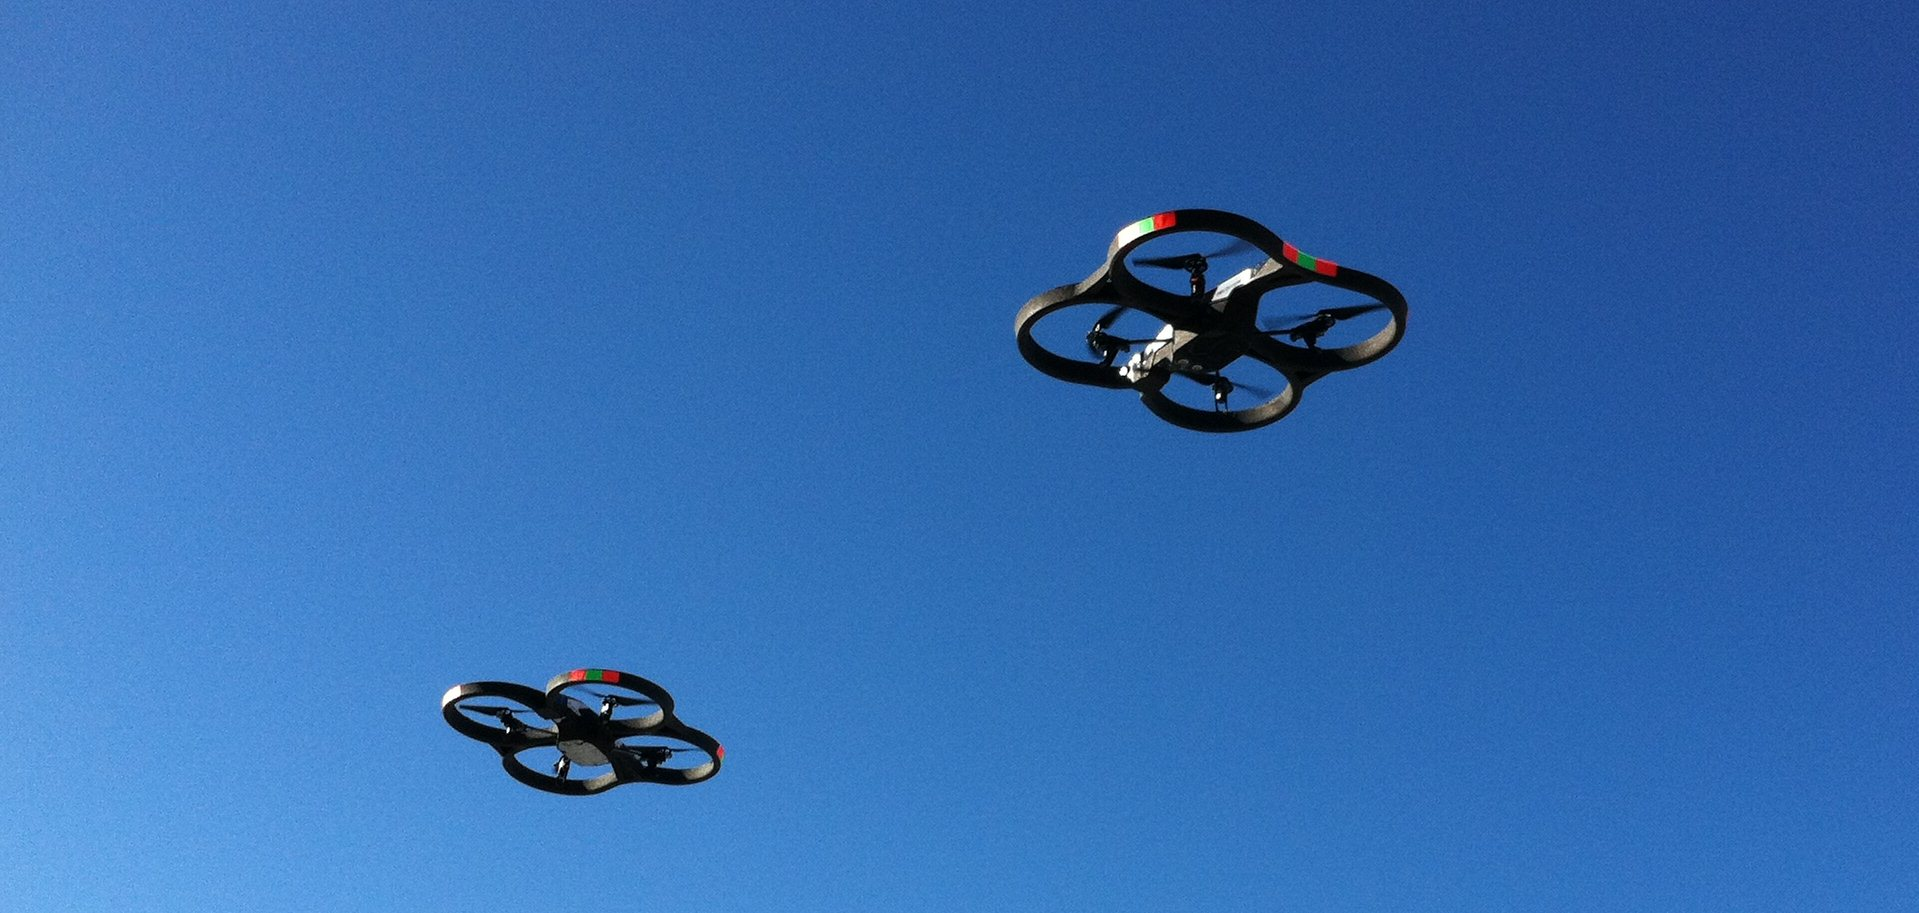 Blog: Drones, the future of delivery?